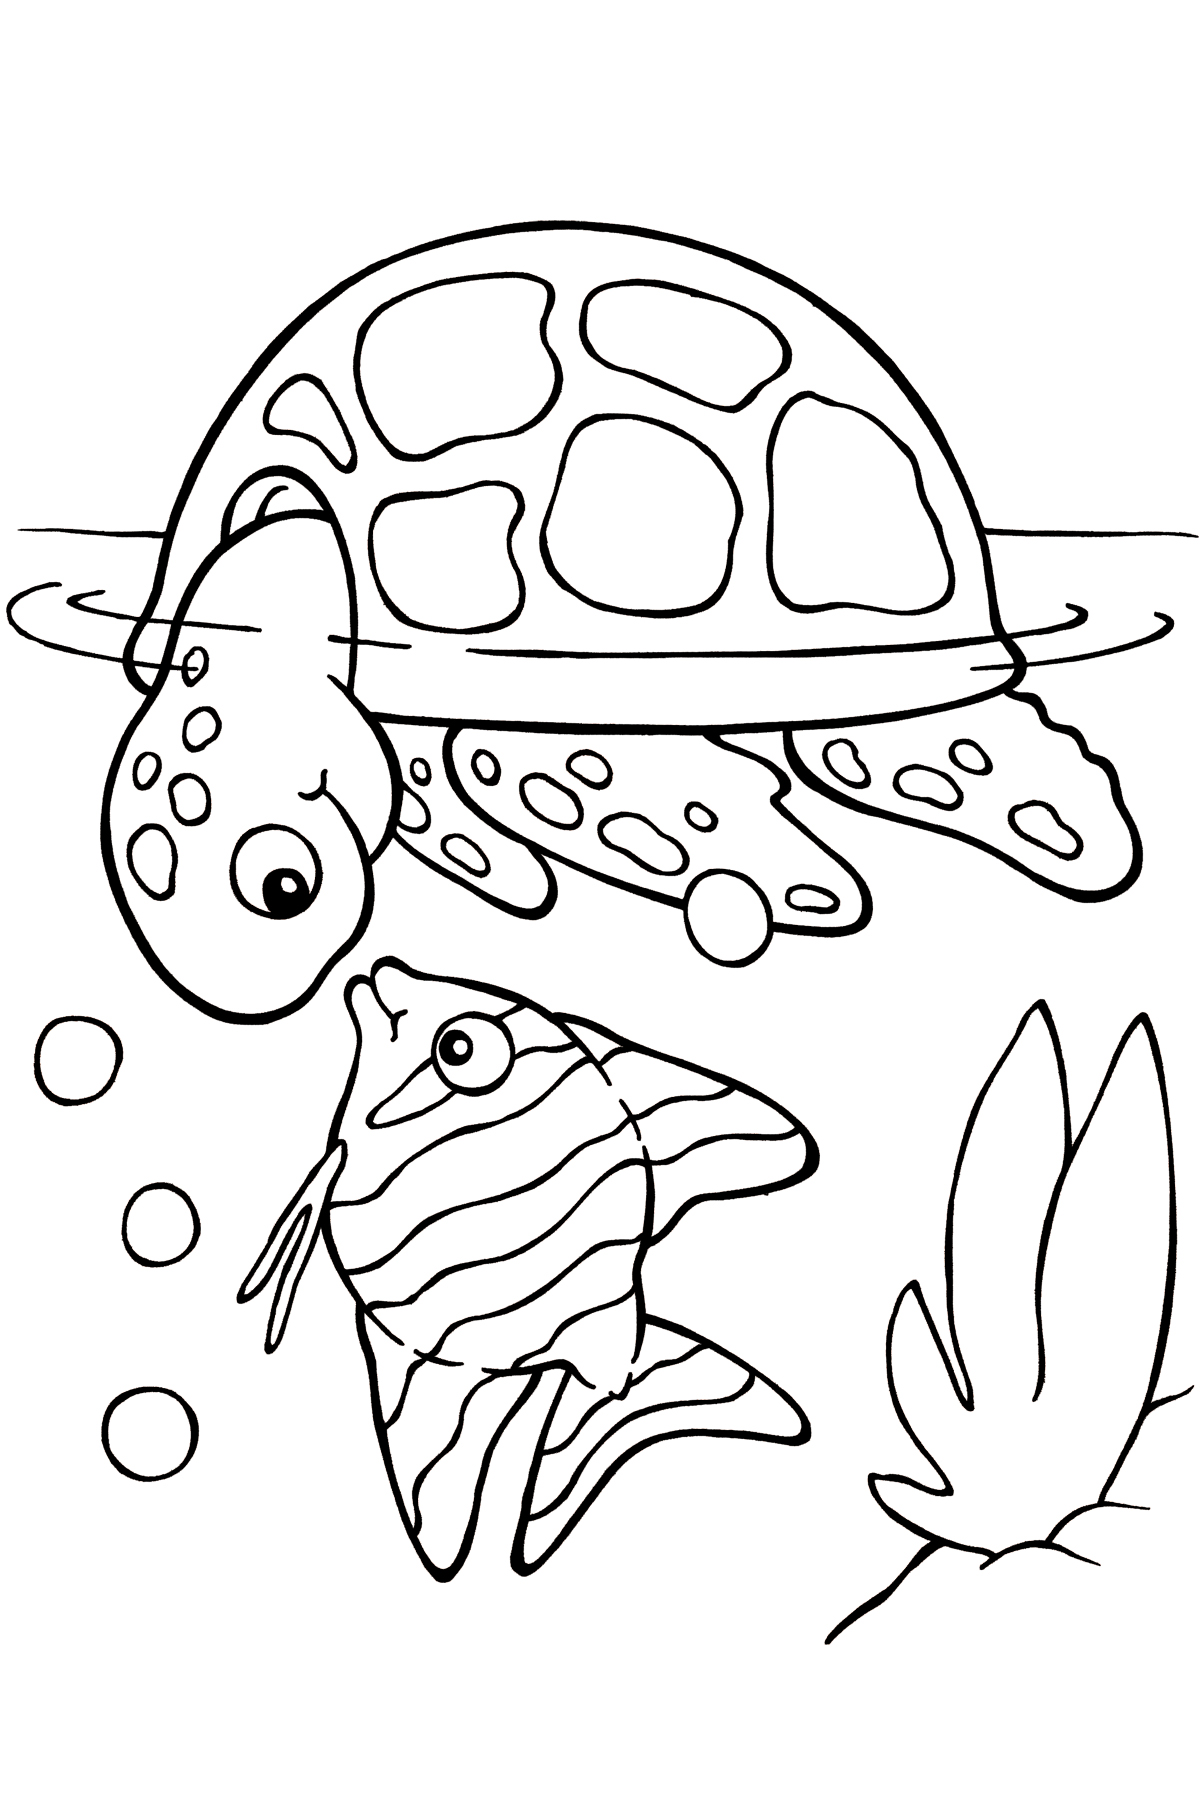 It's just a picture of Critical Printable Turtle Coloring Pages